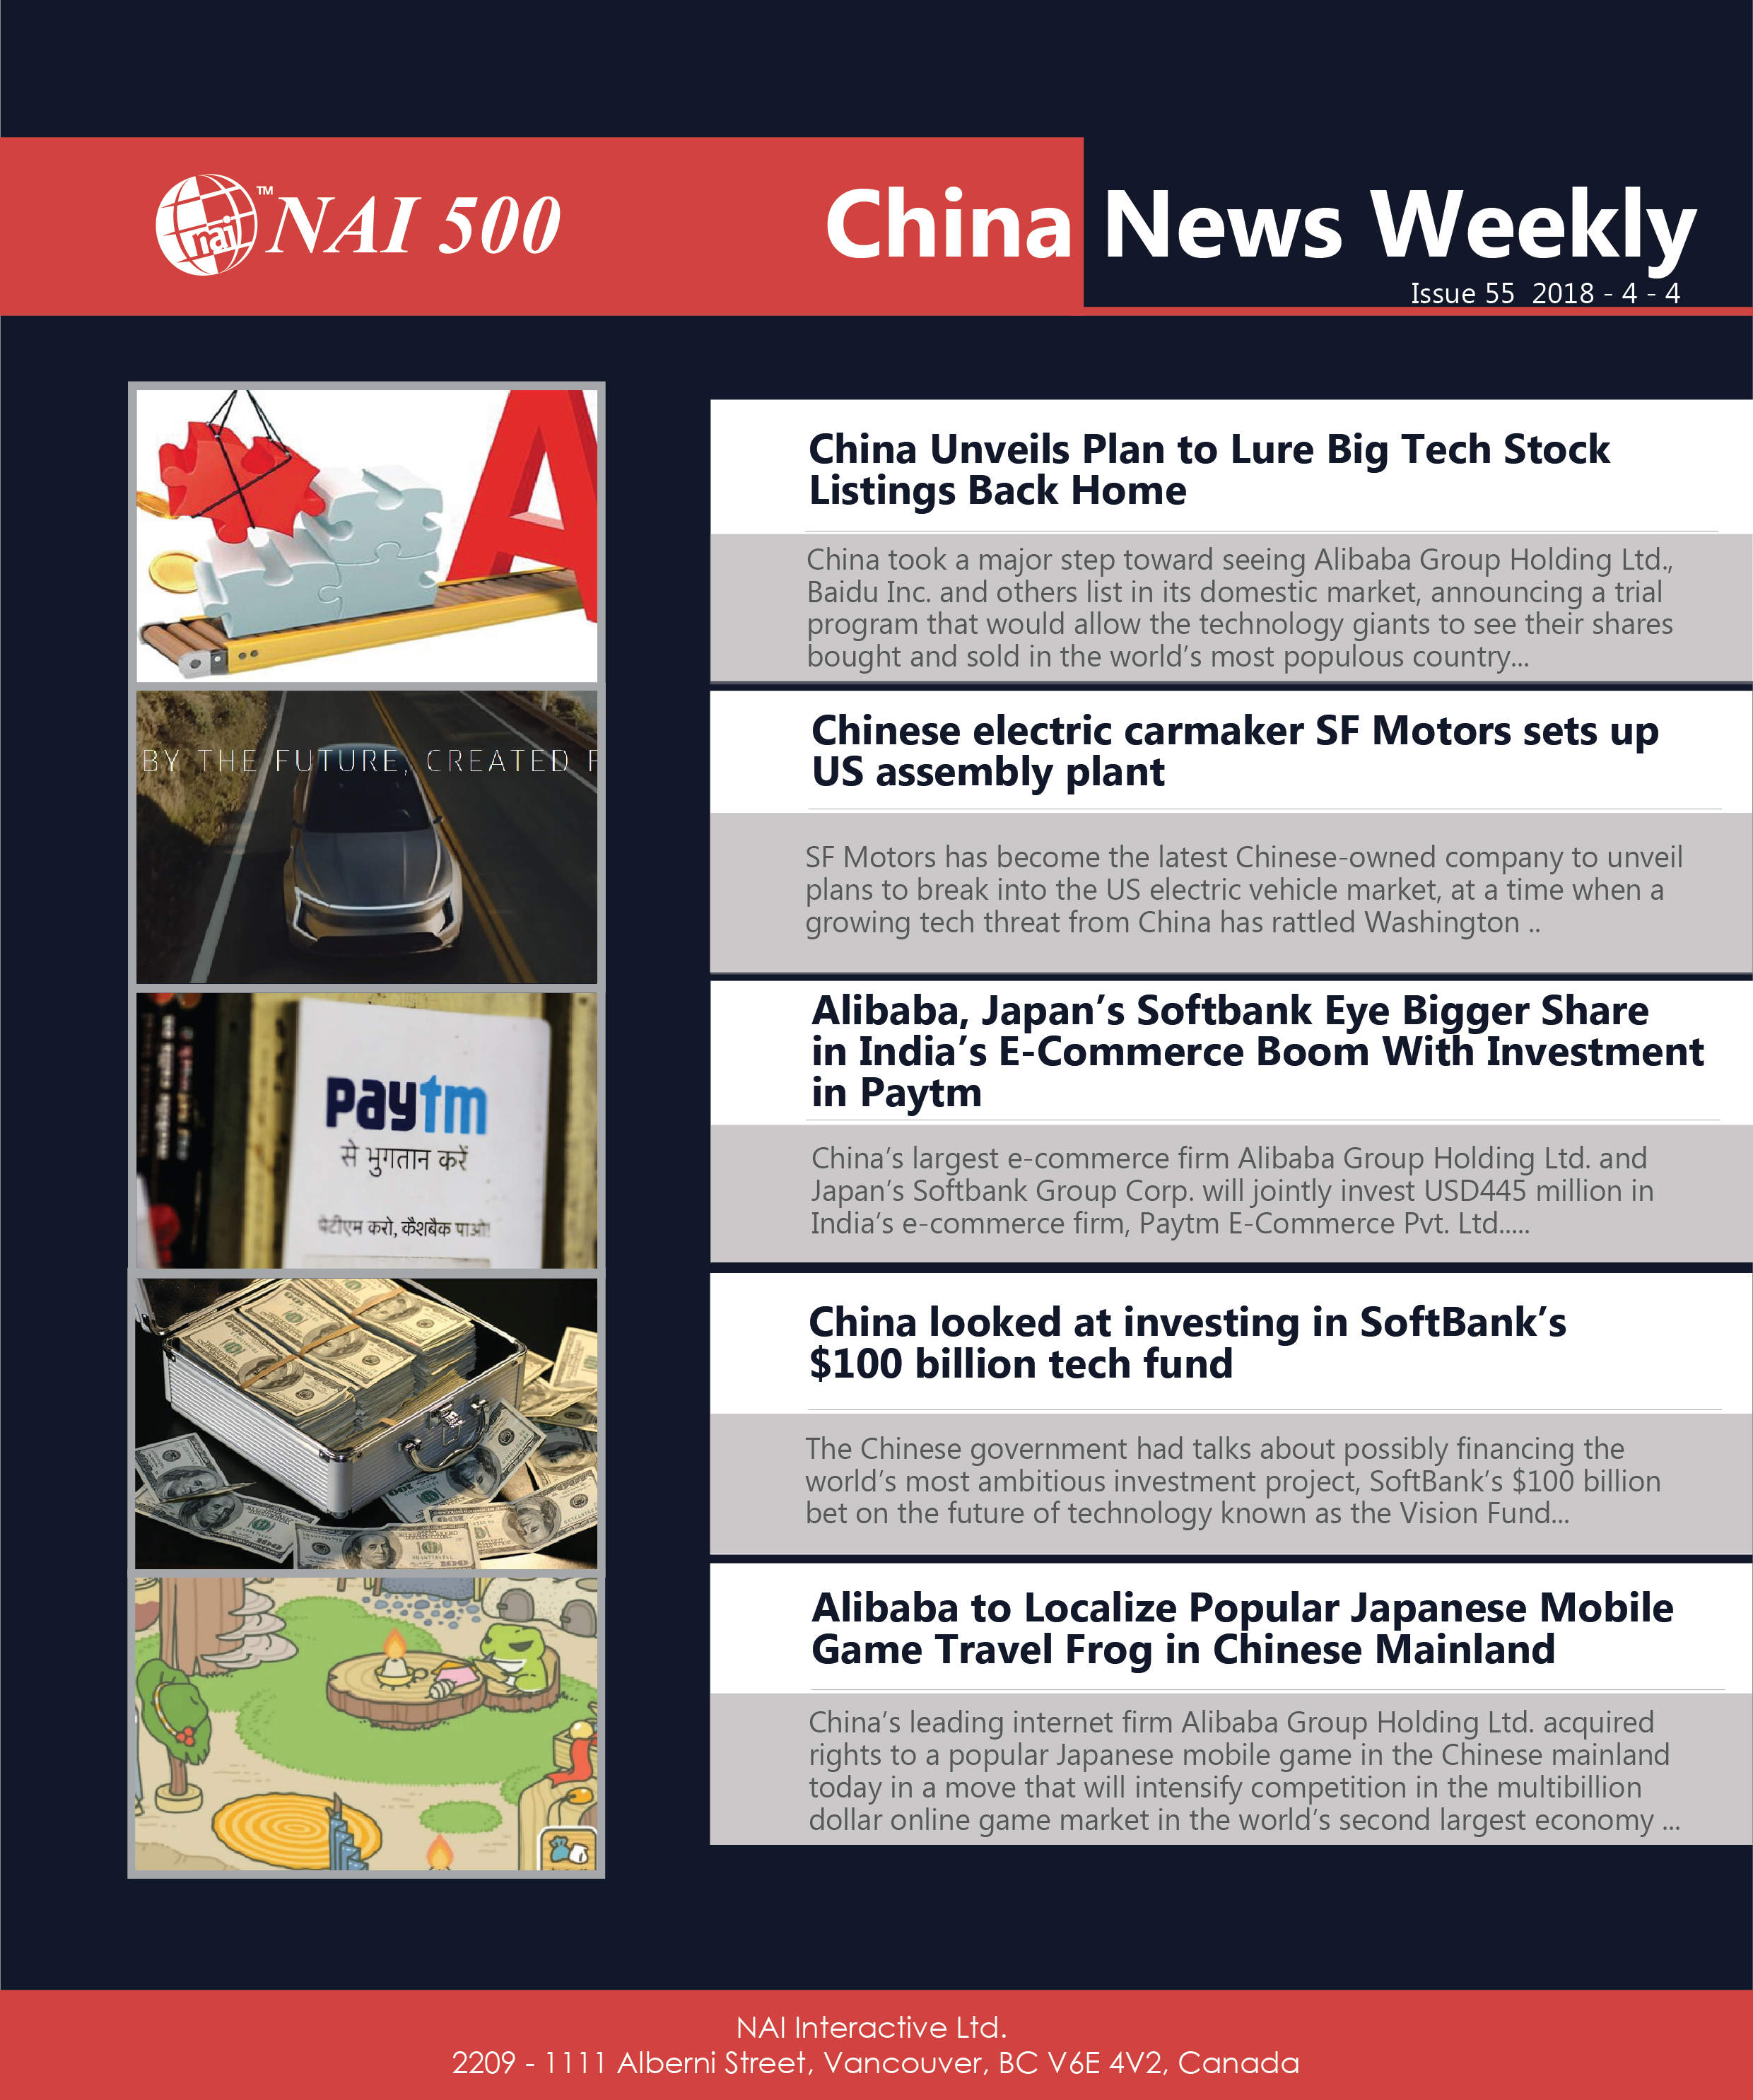 China News Weekly 55 China Unveils Plan To Lure Big Tech Stock